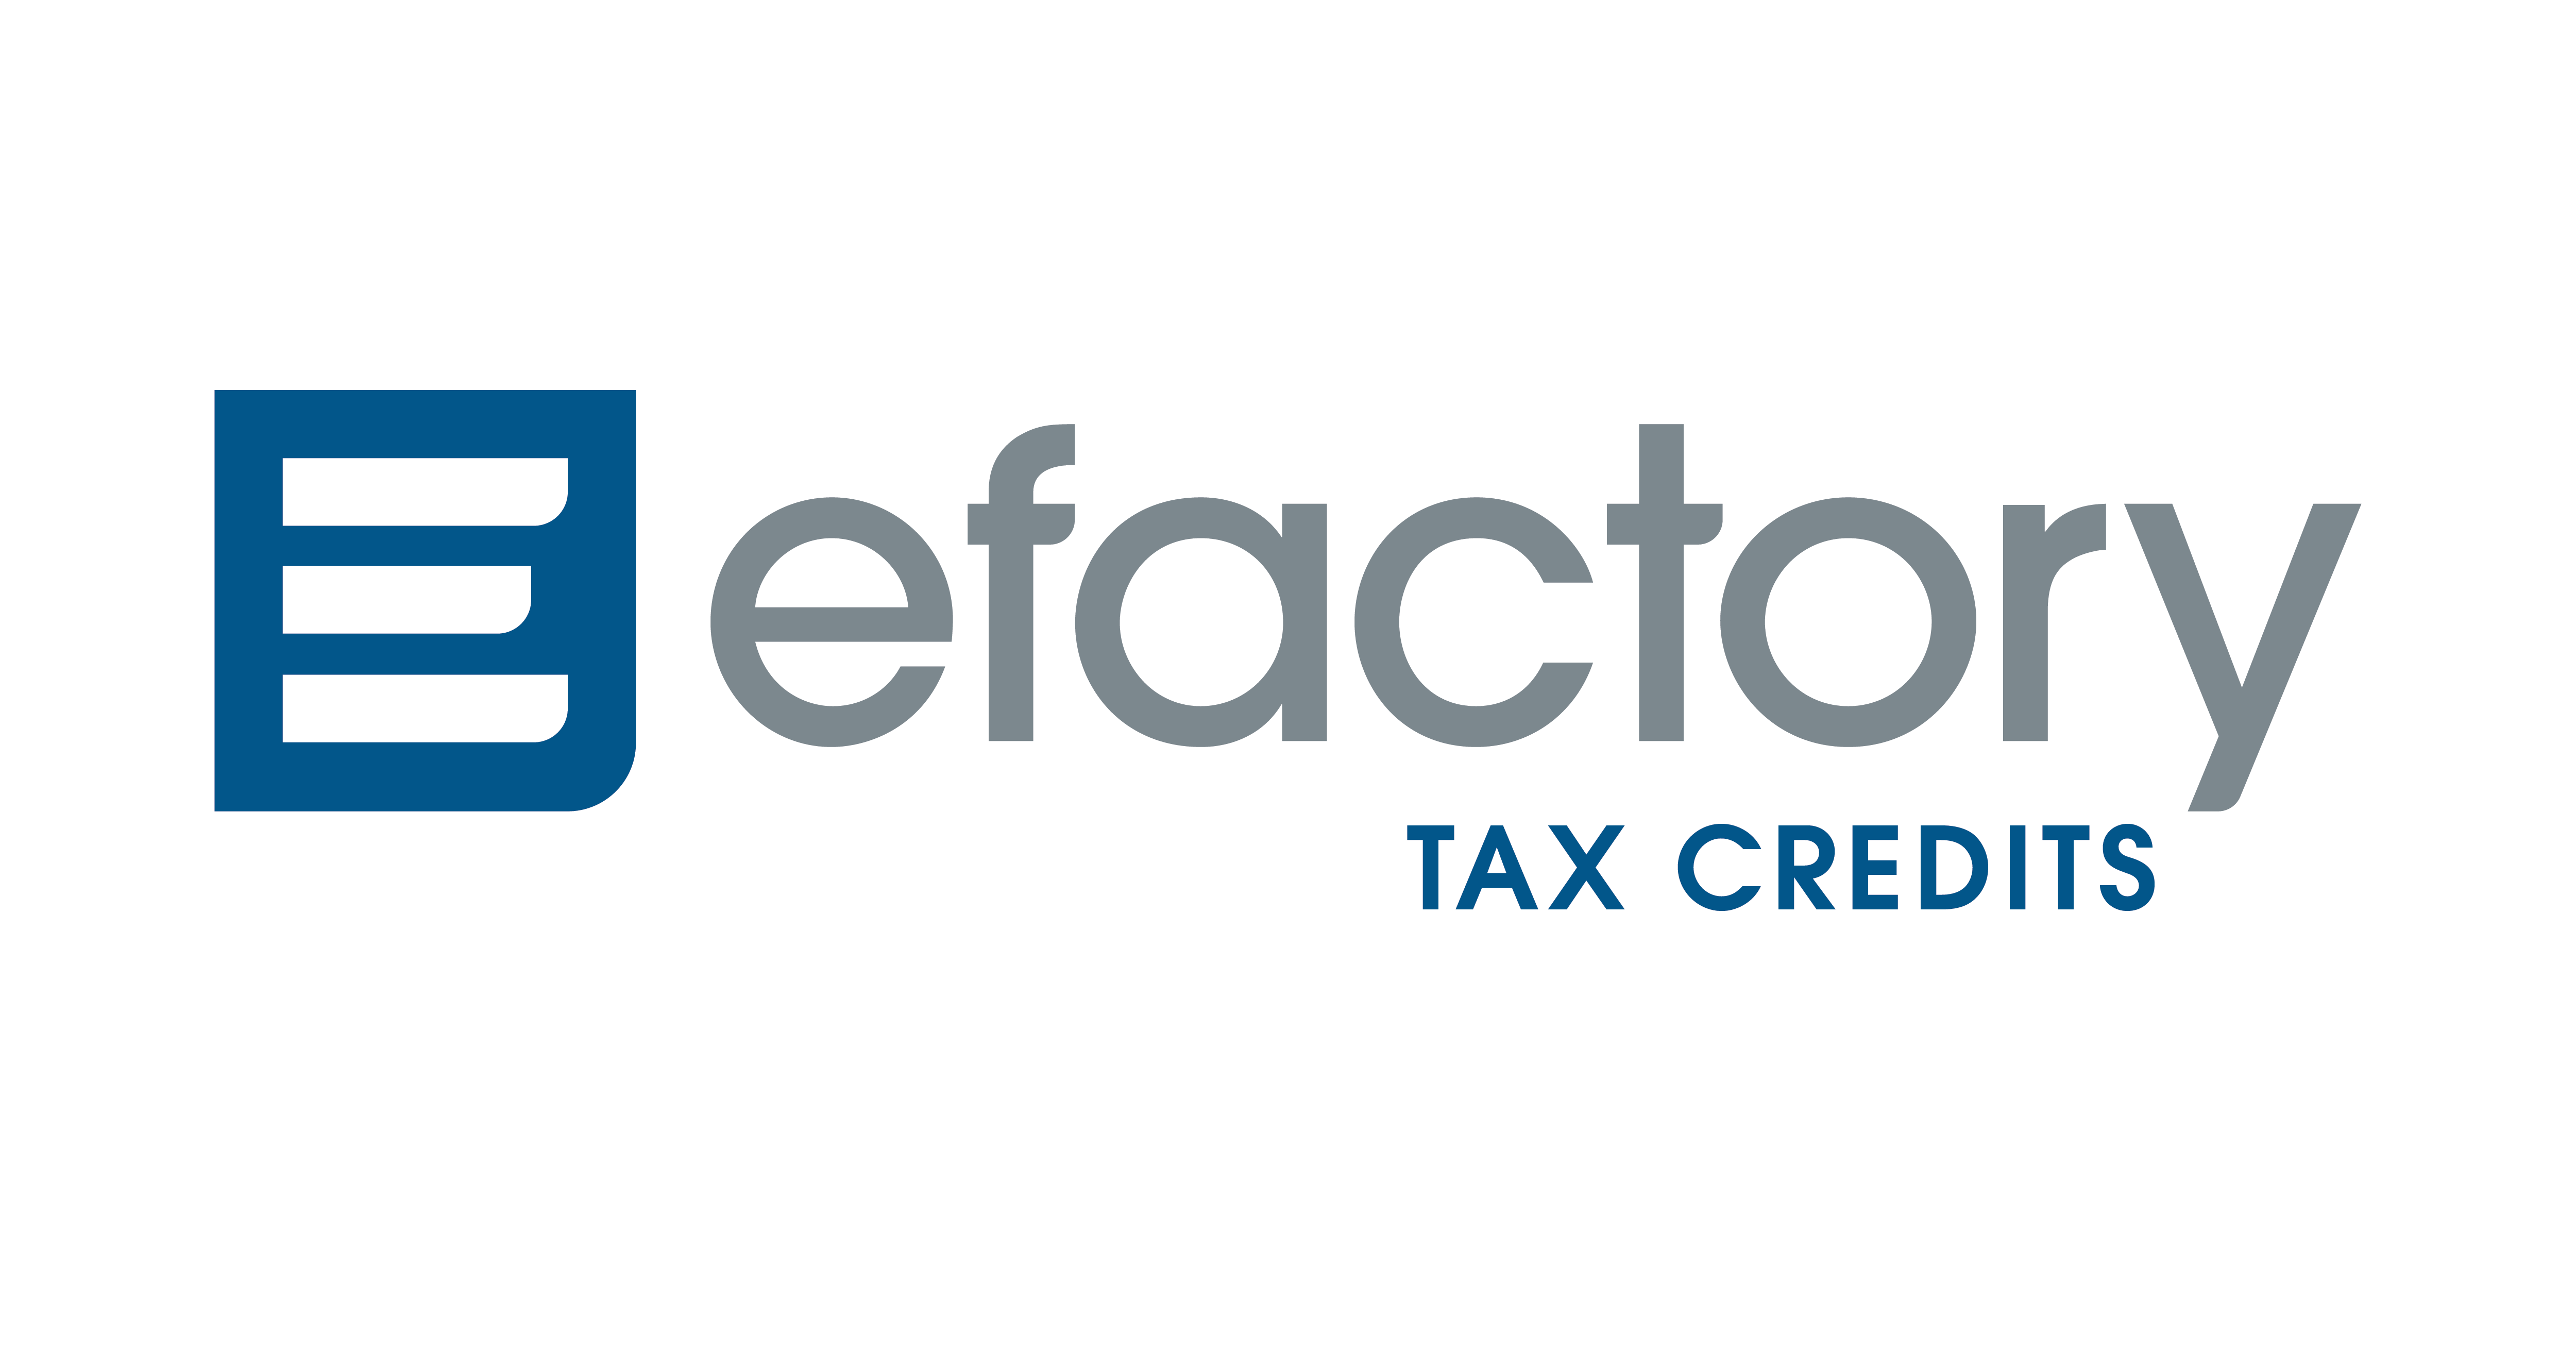 Earn tax credits with your charitable contribution to the efactory